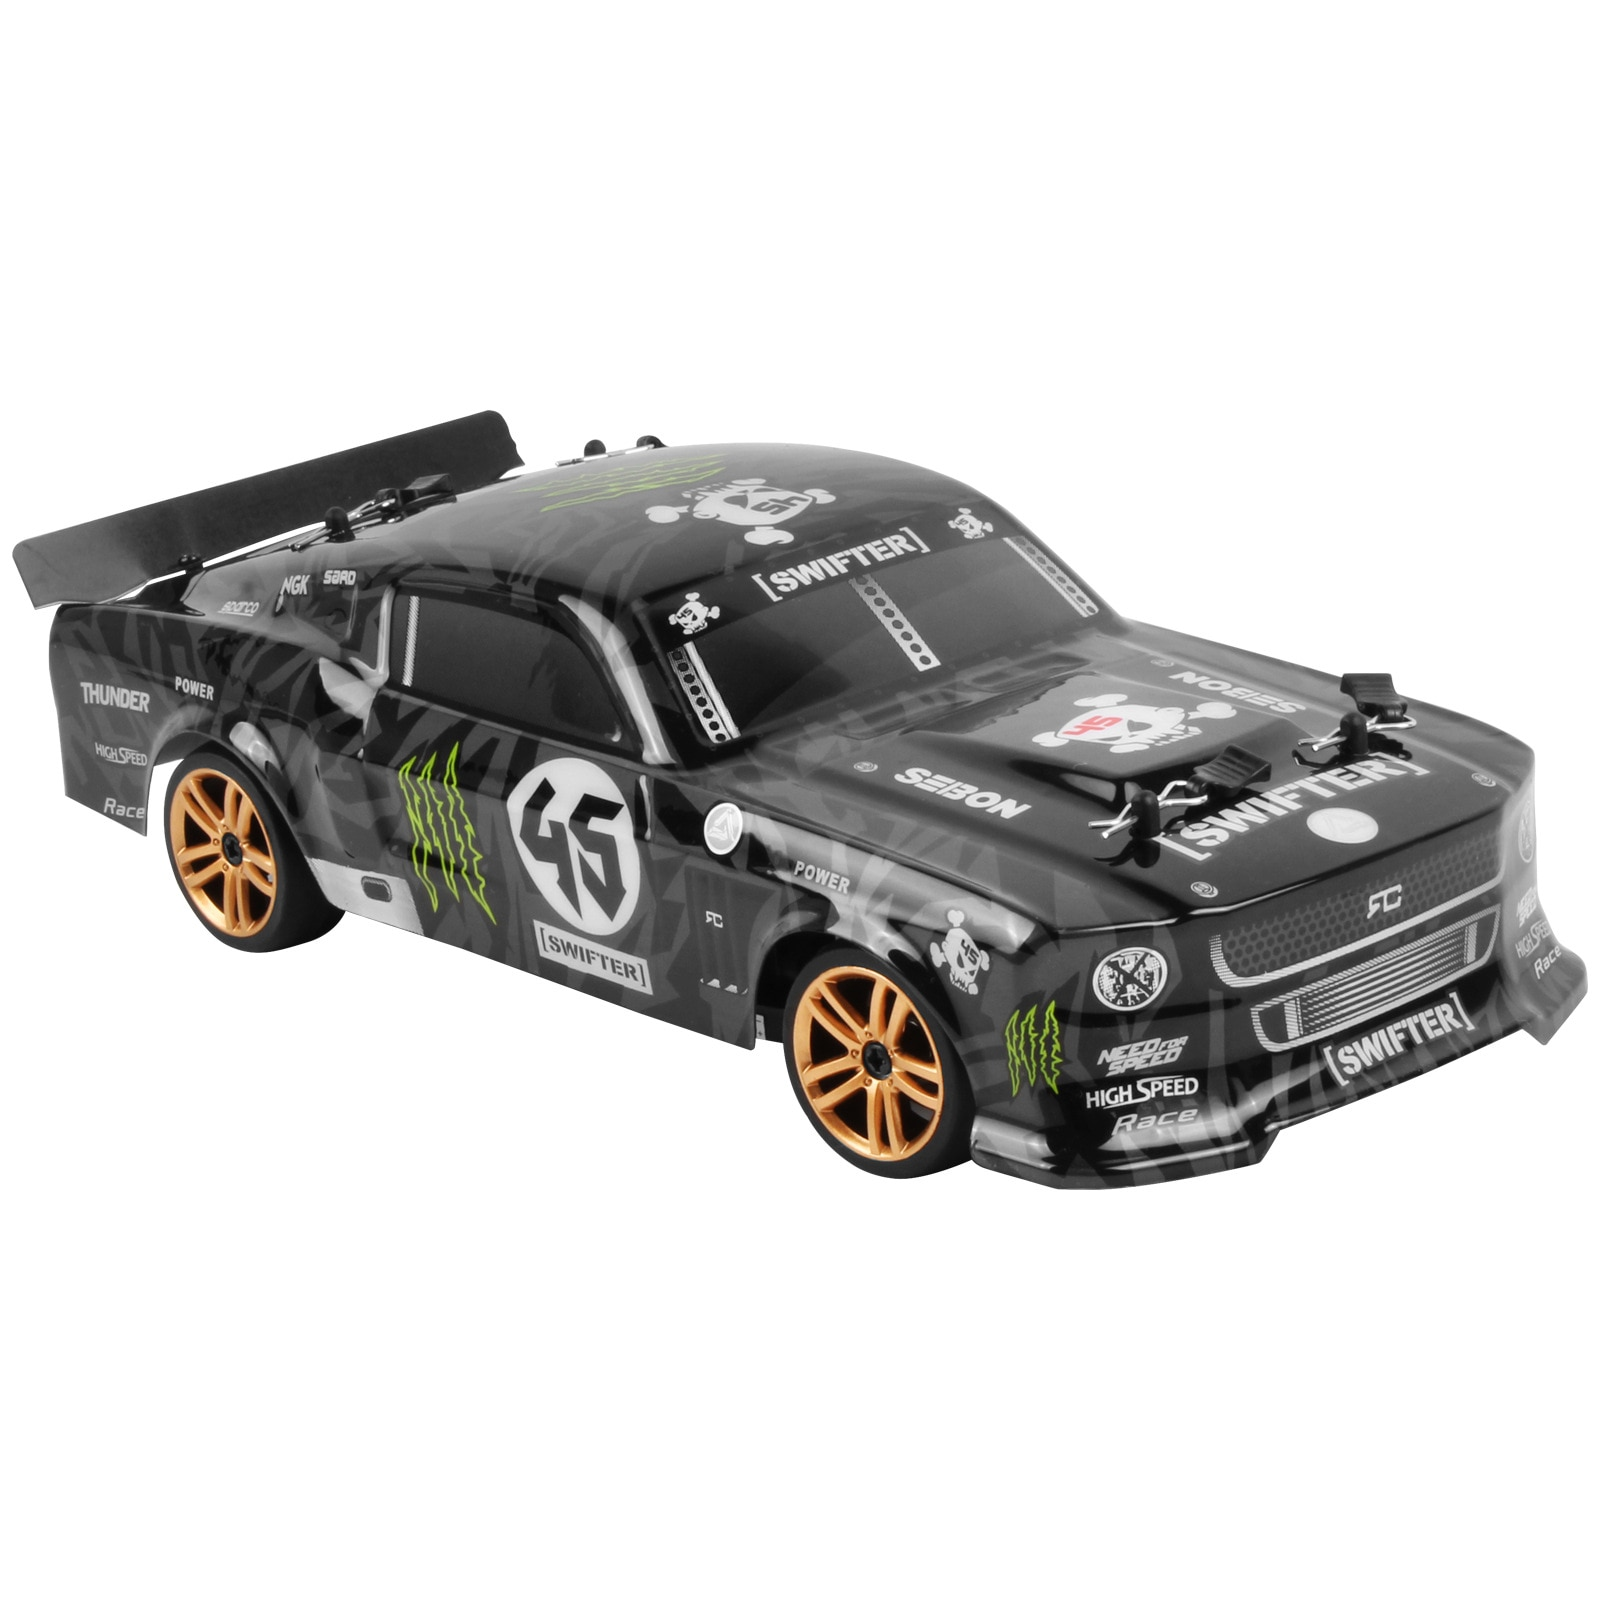 JTY Toys RC Car 4WD 1:18 Scale Stunt Drift Racing Upgrade With Light 46km/h High Speed Radio Remote Control Cars For Children enlarge